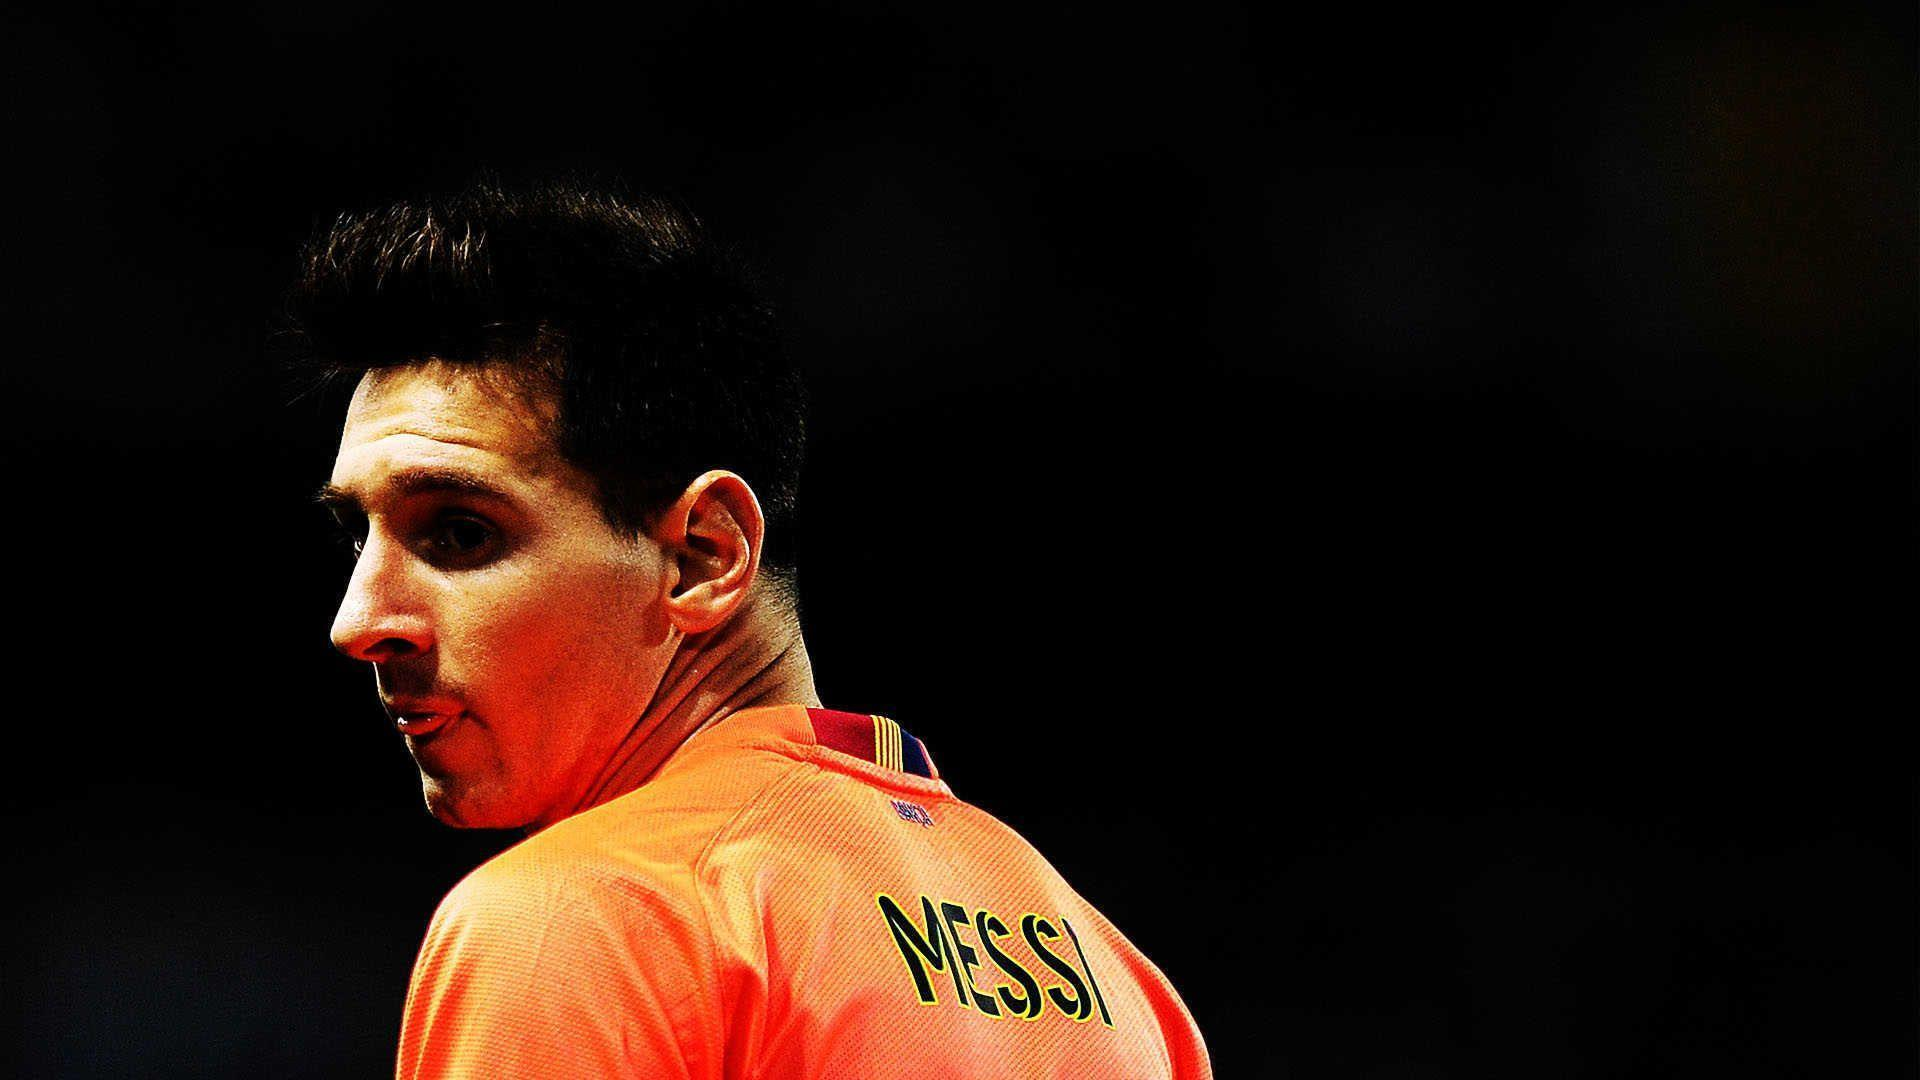 Badminton Quotes Wallpaper Lionel Messi 2015 1080p Hd Wallpapers Wallpaper Cave